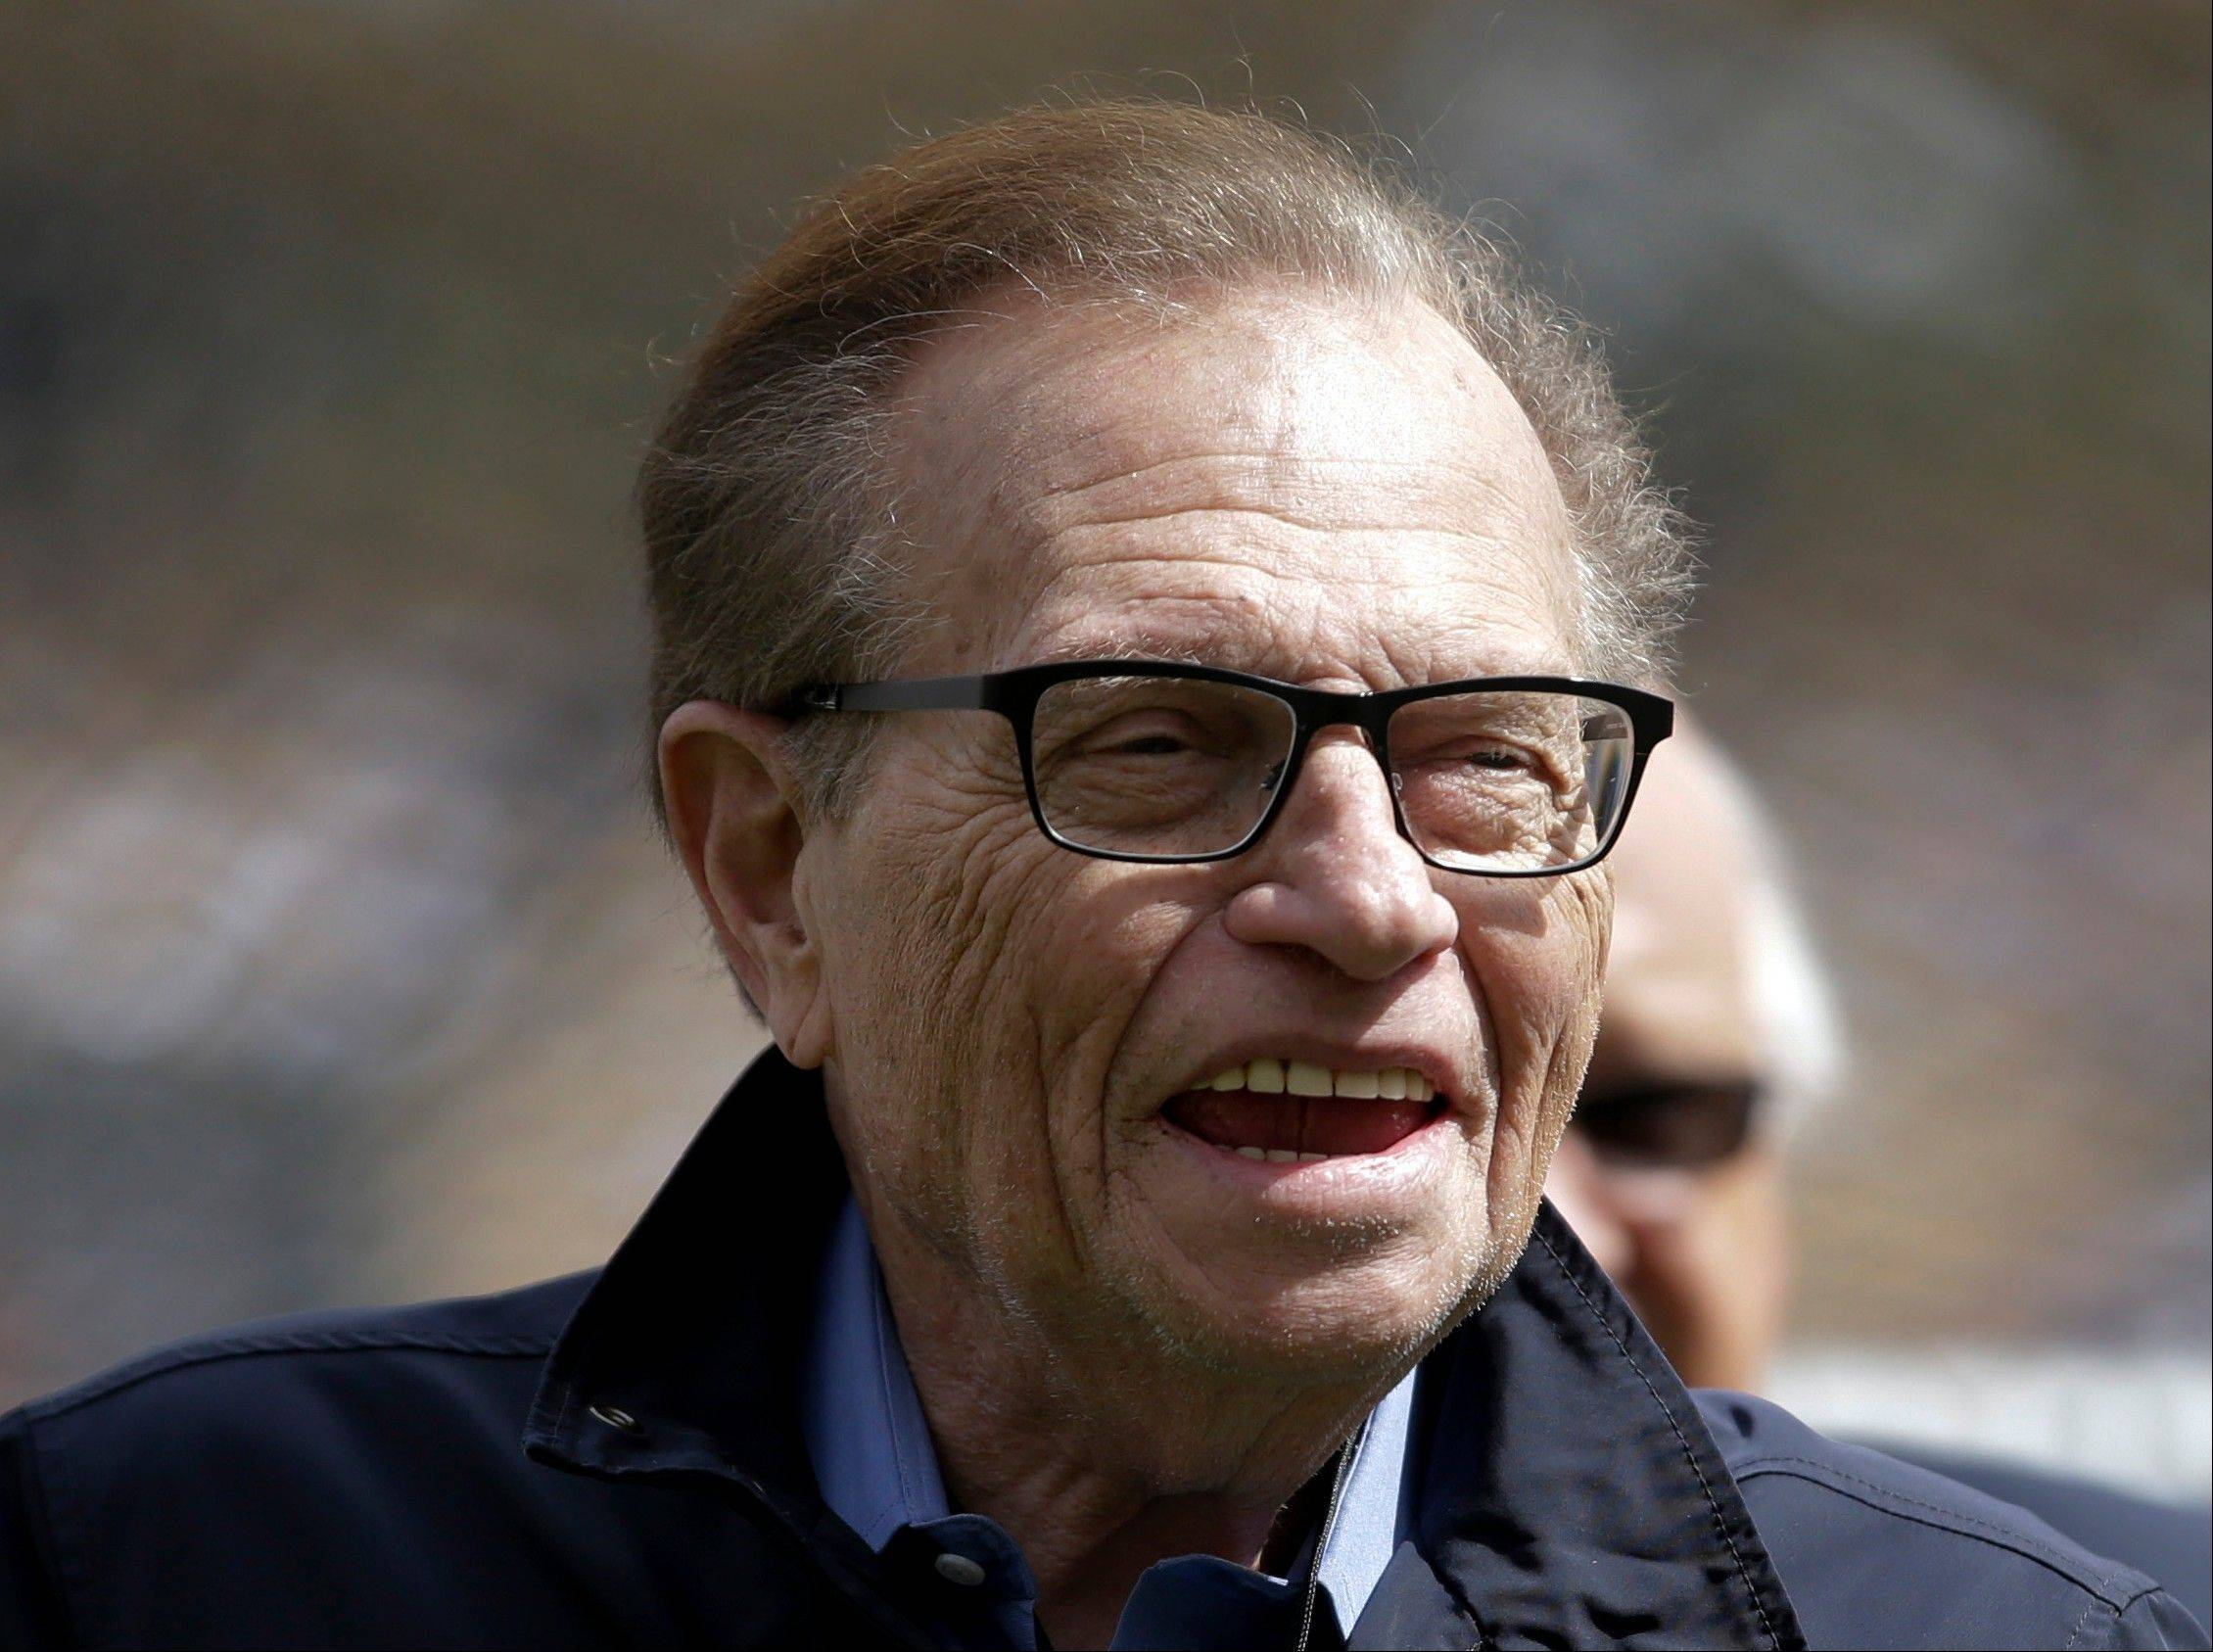 Talk show host Larry King will launch a new a political talk show beginning next month.